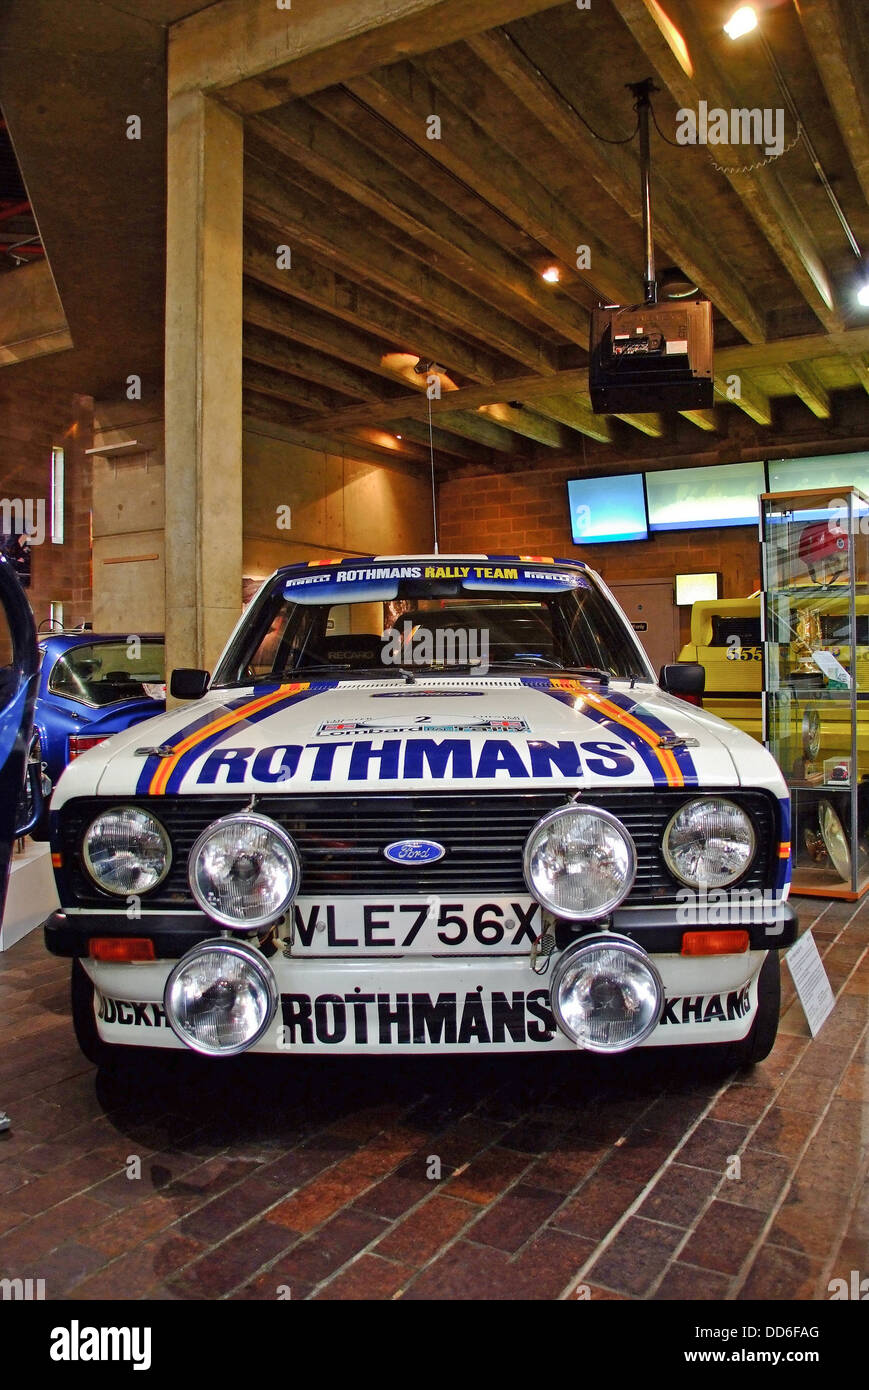 Rothmans Mk2 Ford Escort Rally Car Stock Photo: 59765400 - Alamy